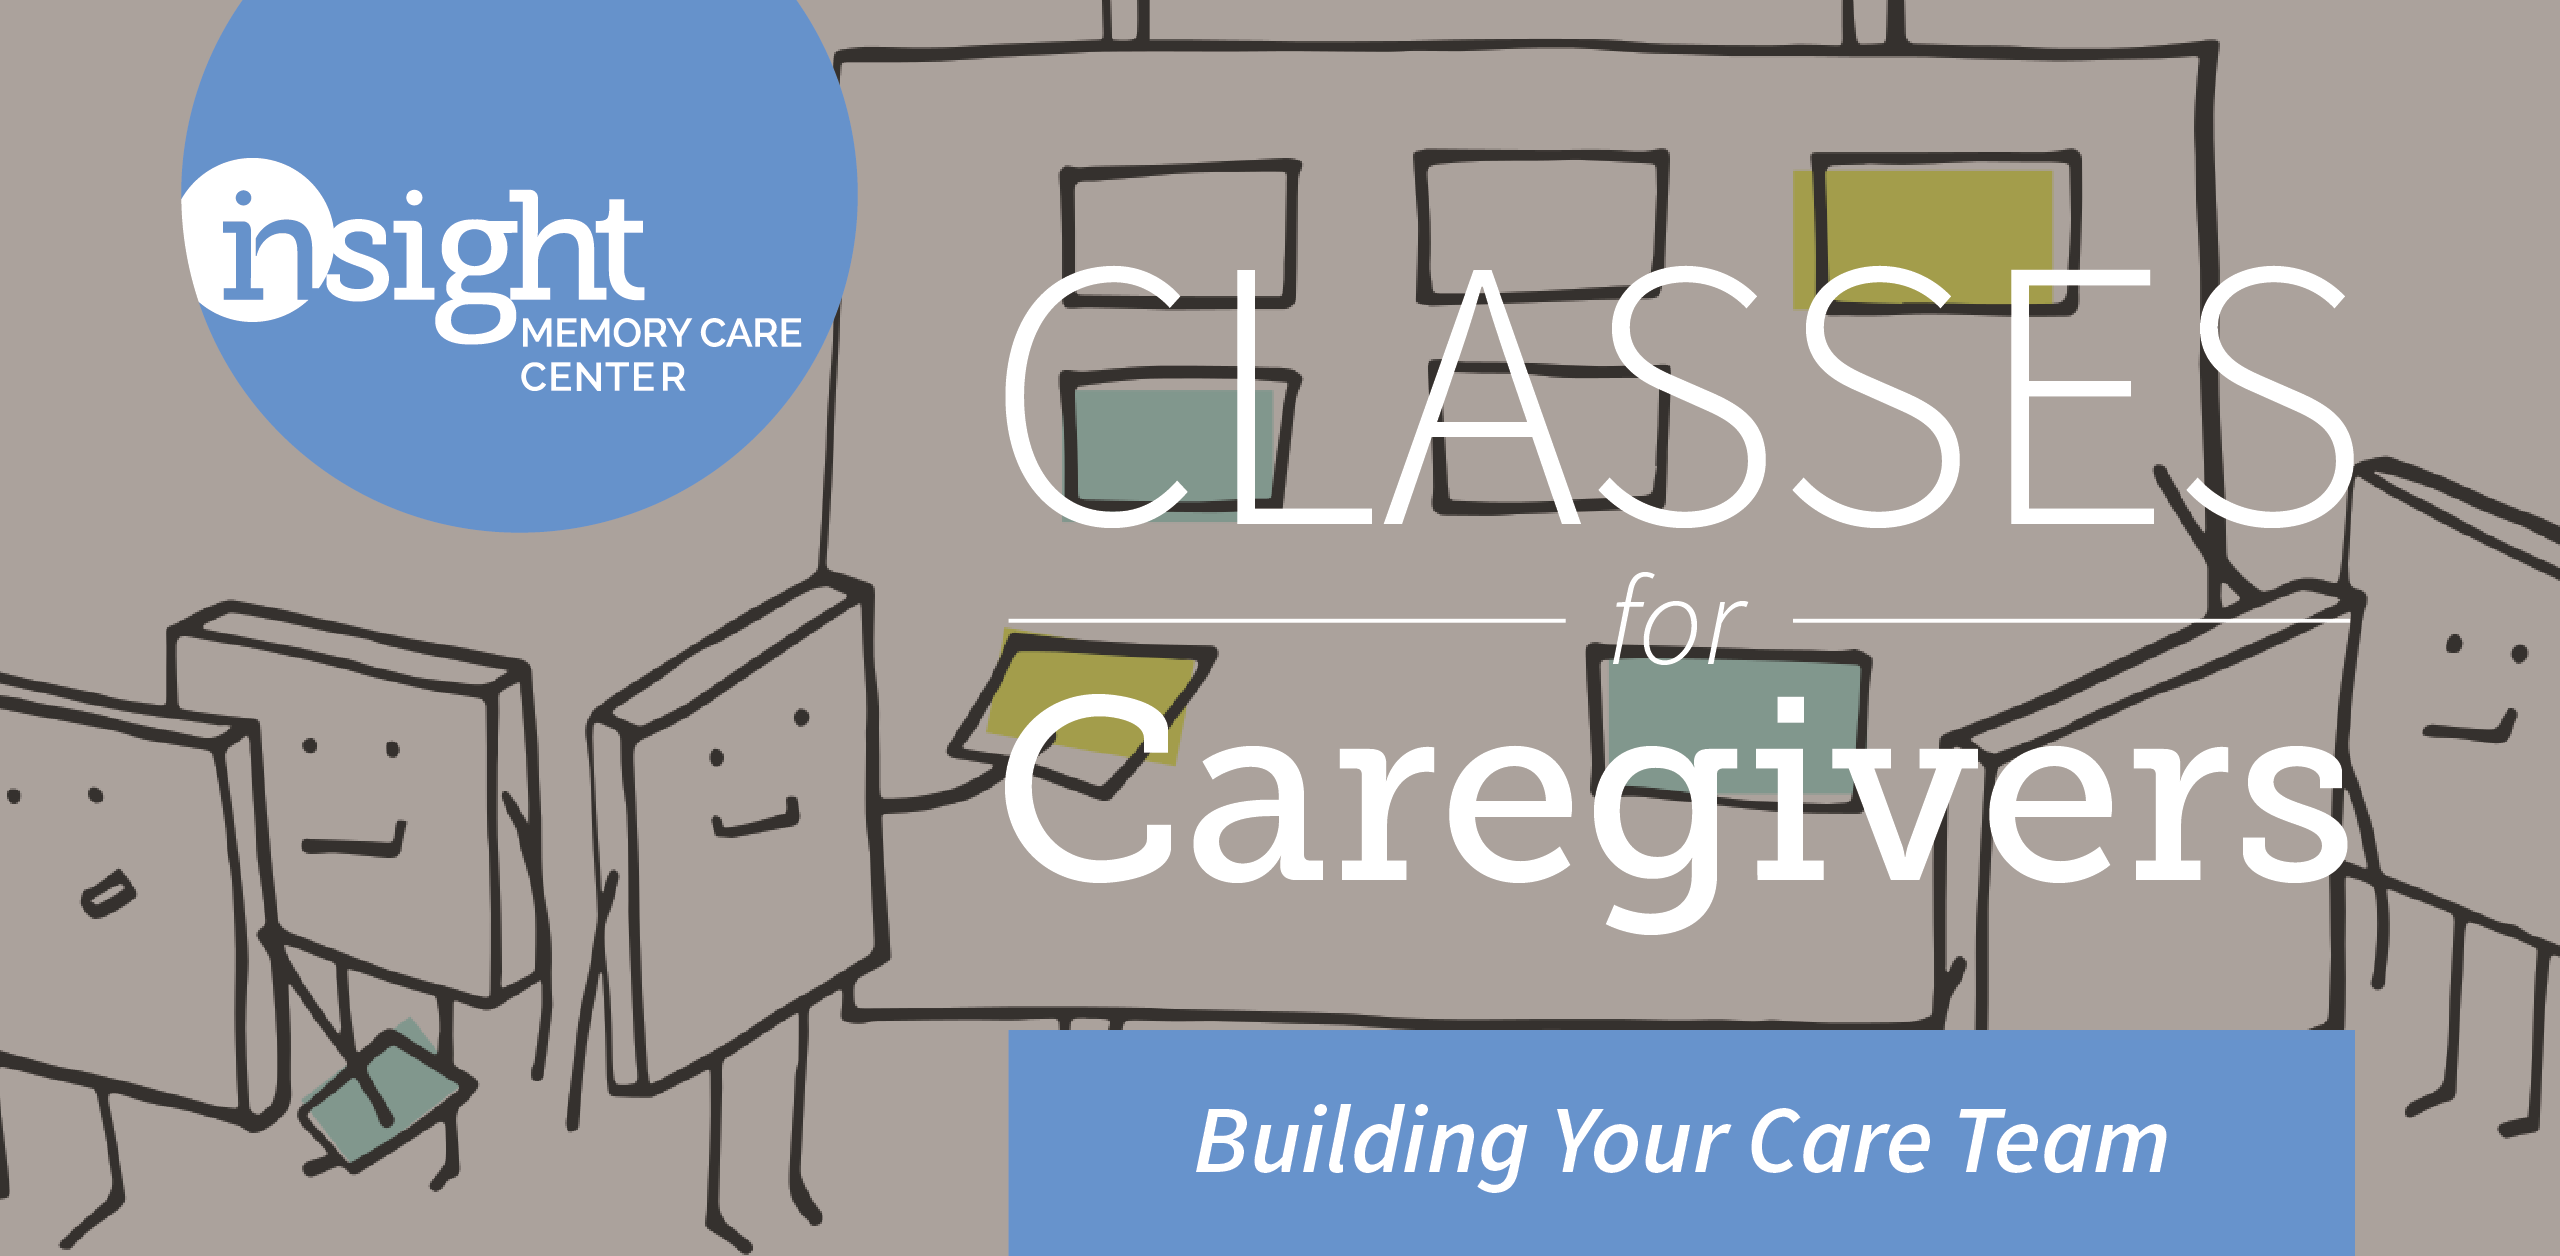 You Can't Do This Alone: Building Your Care Team